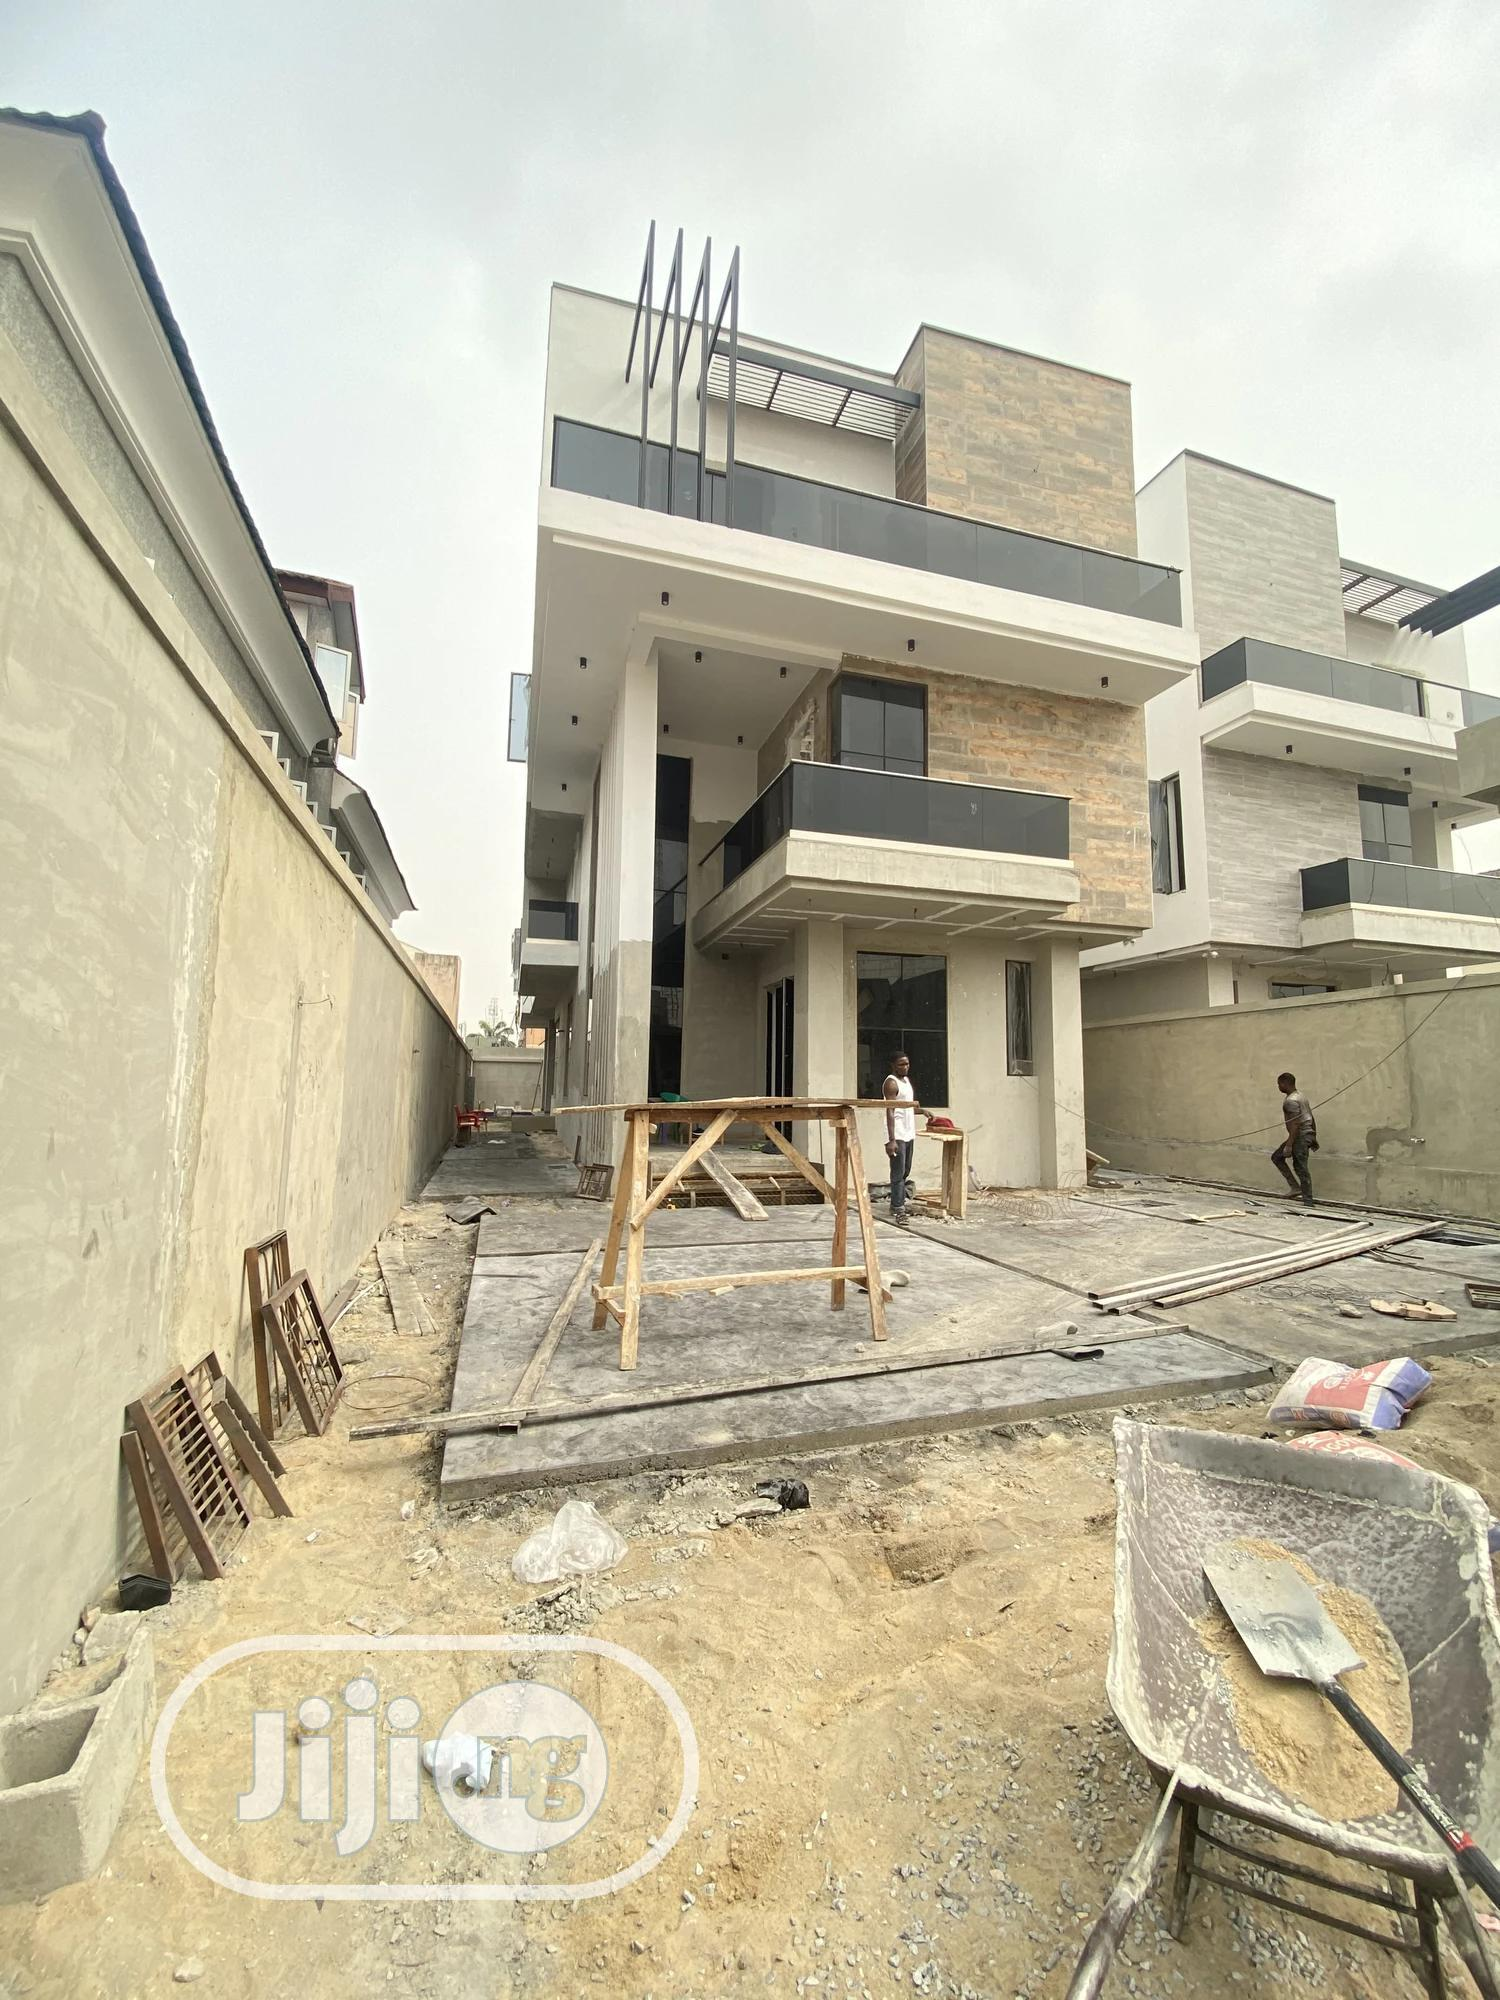 5 Bedroom Mansion With Pool, Cinema, Gym, Penthouse